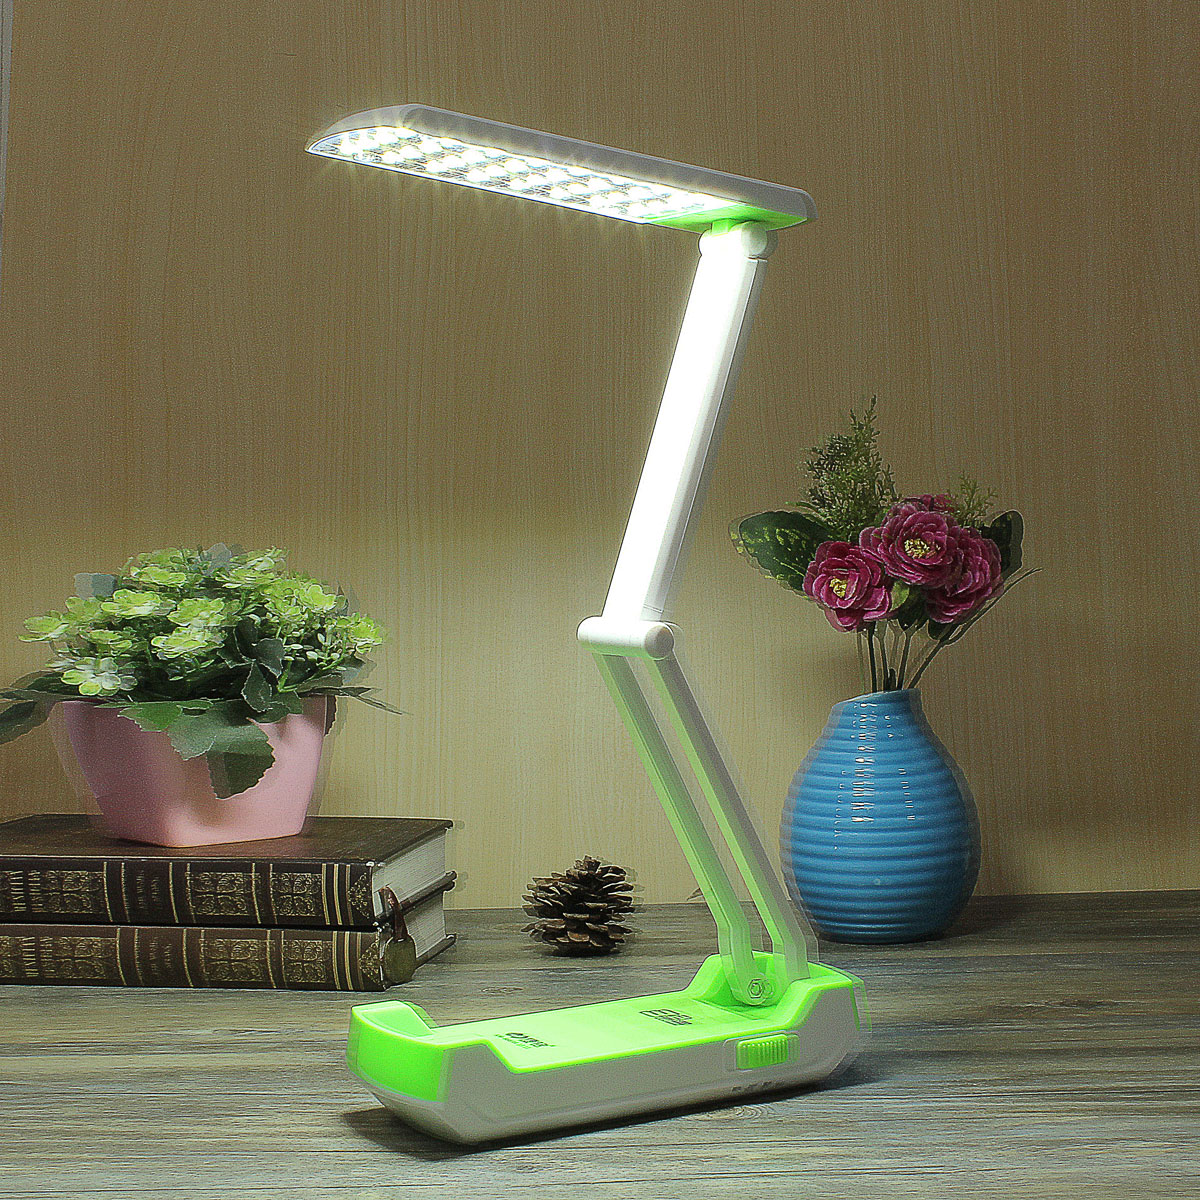 portable rechargeable led eclairage lampe de table bureau etude lecteur camping ebay. Black Bedroom Furniture Sets. Home Design Ideas